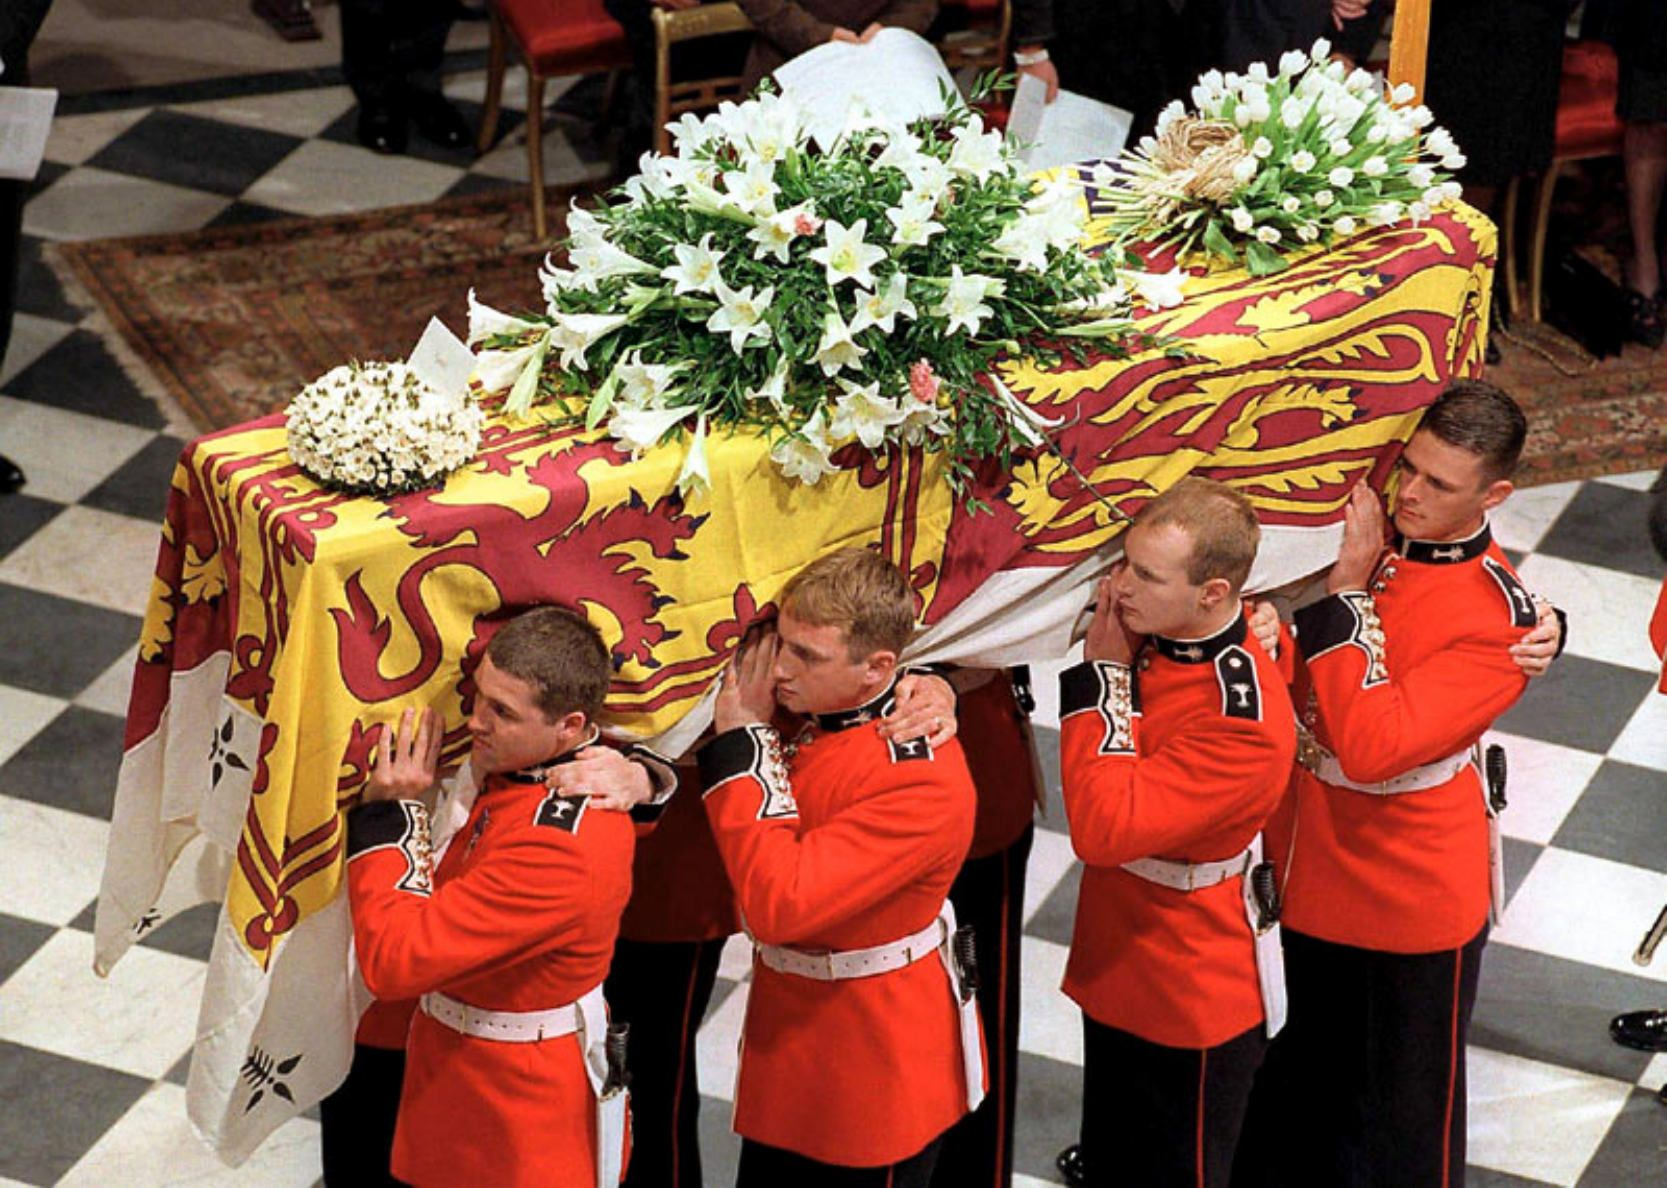 Princess Diana Funeral Photo C Getty Images Princess Diana